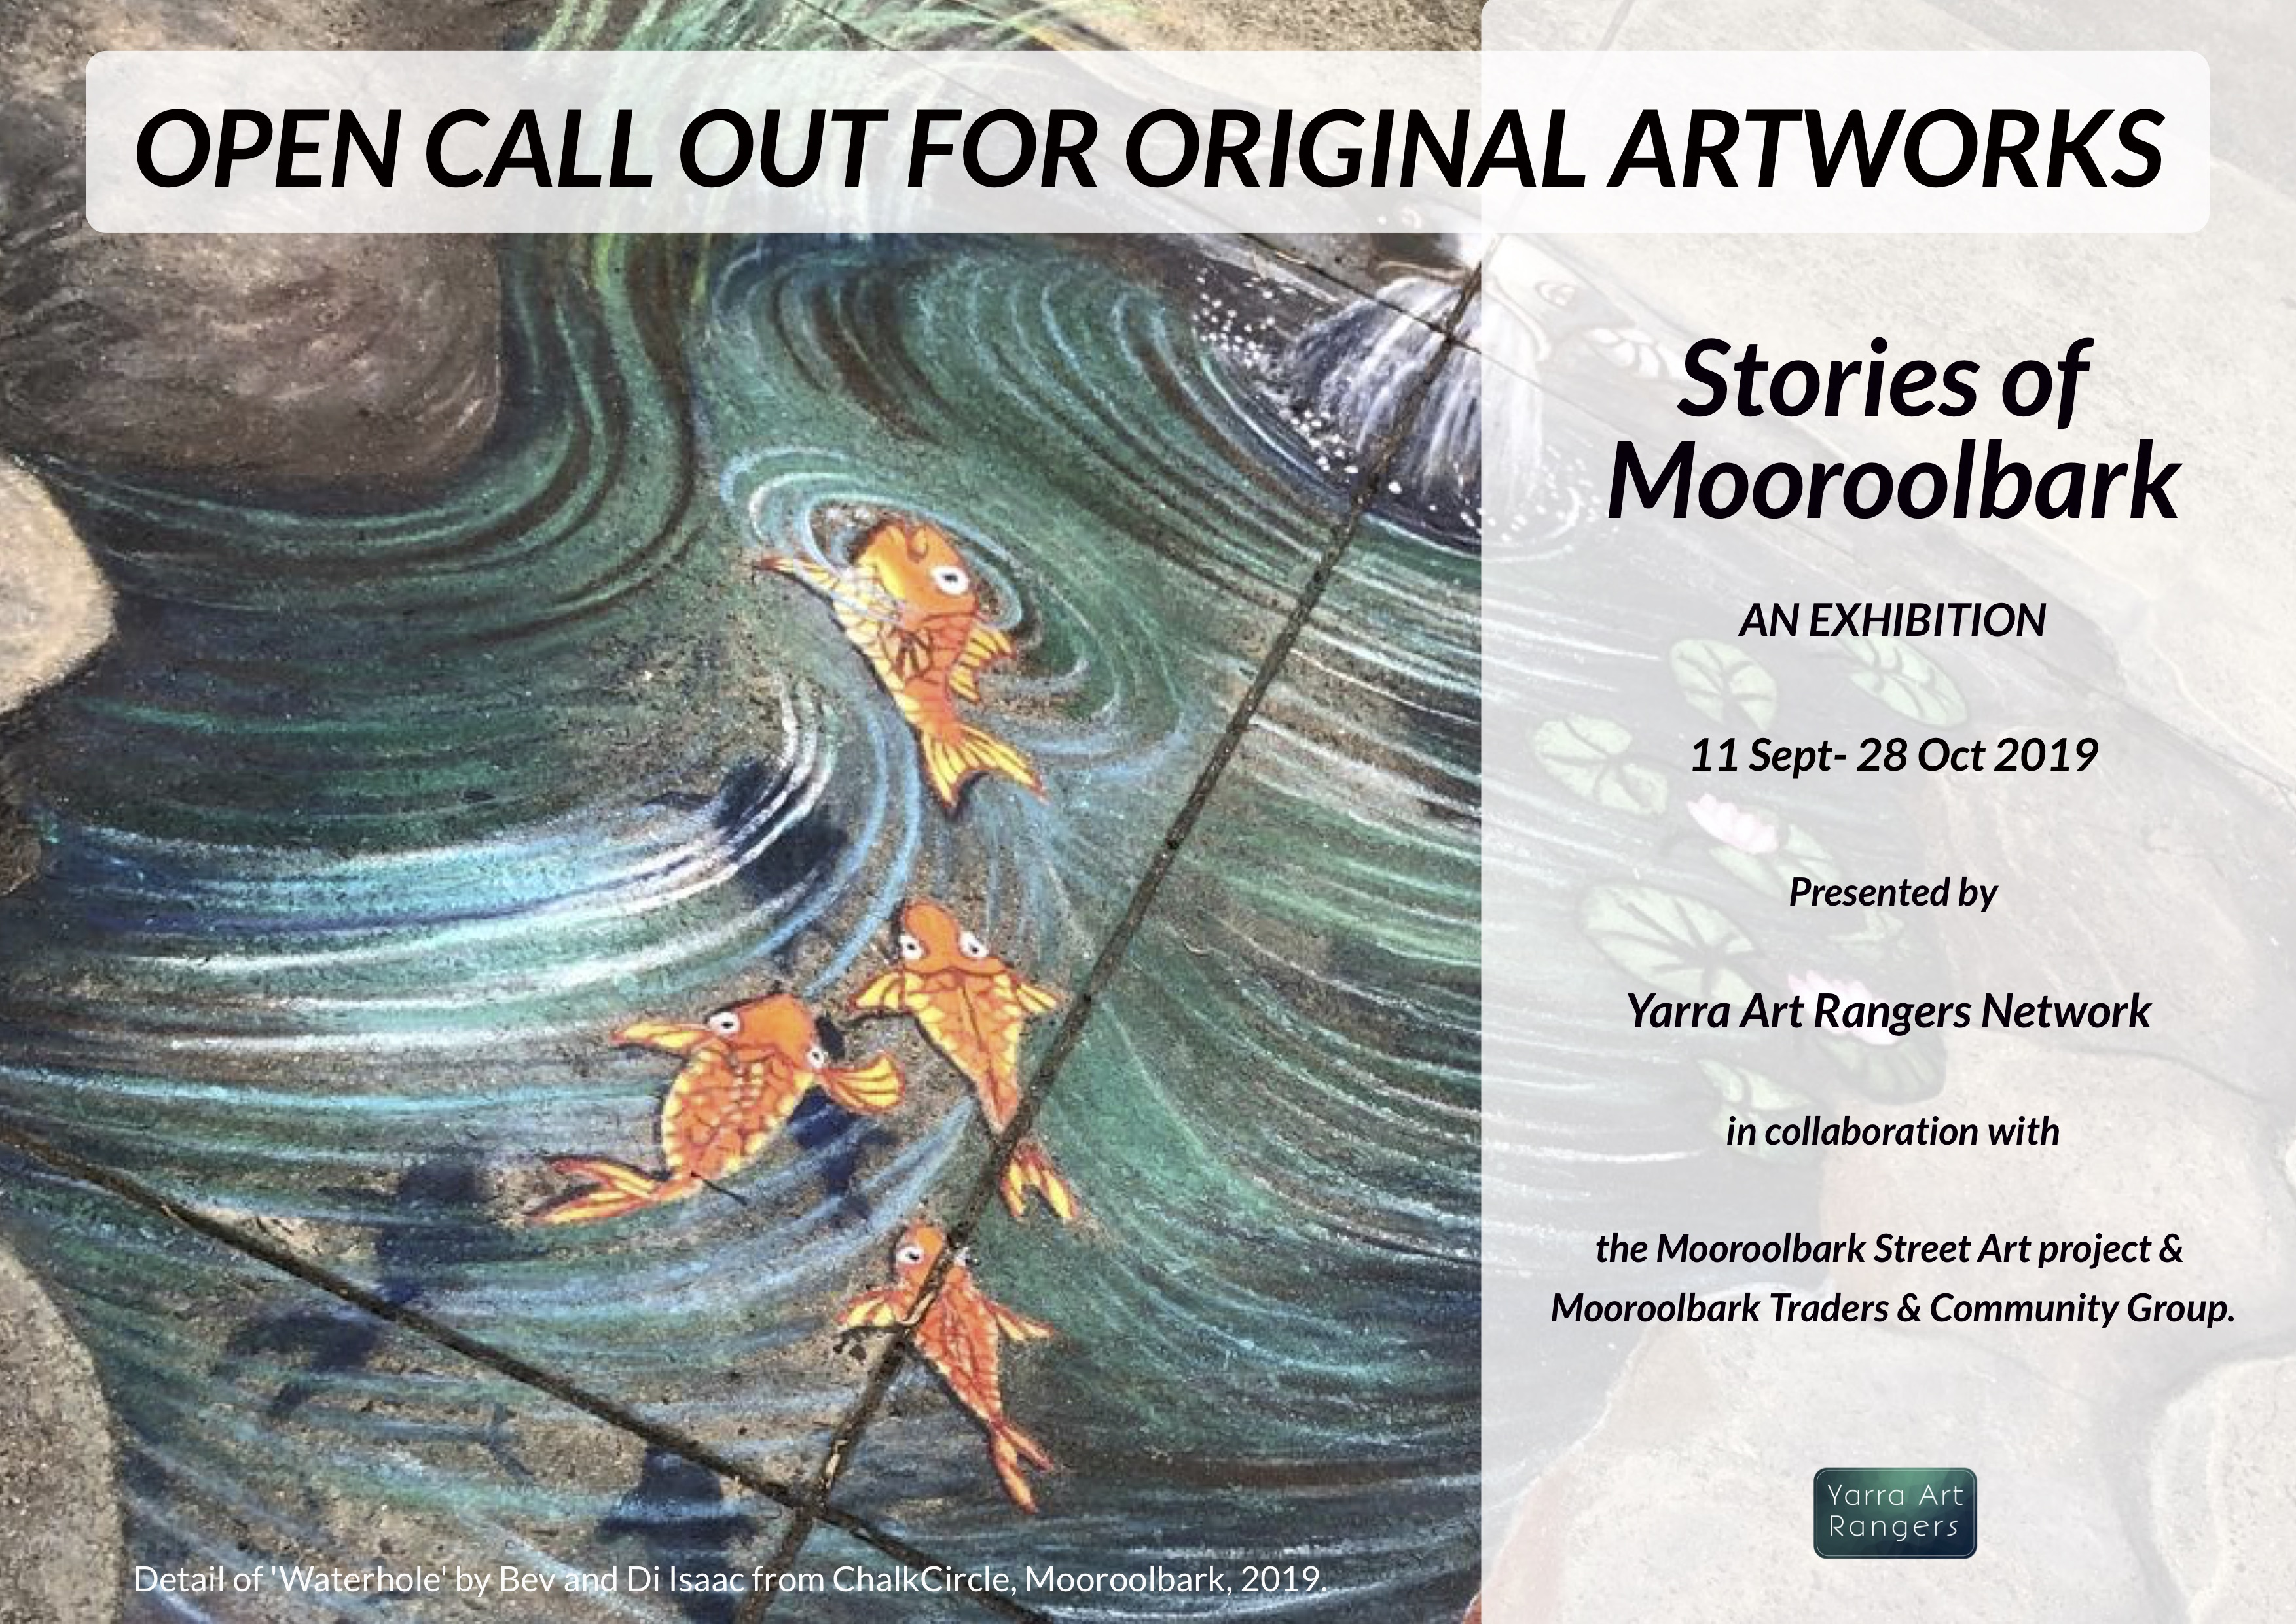 Stories of Mooroolbark exhibition callout - artwork by ChalkCircle